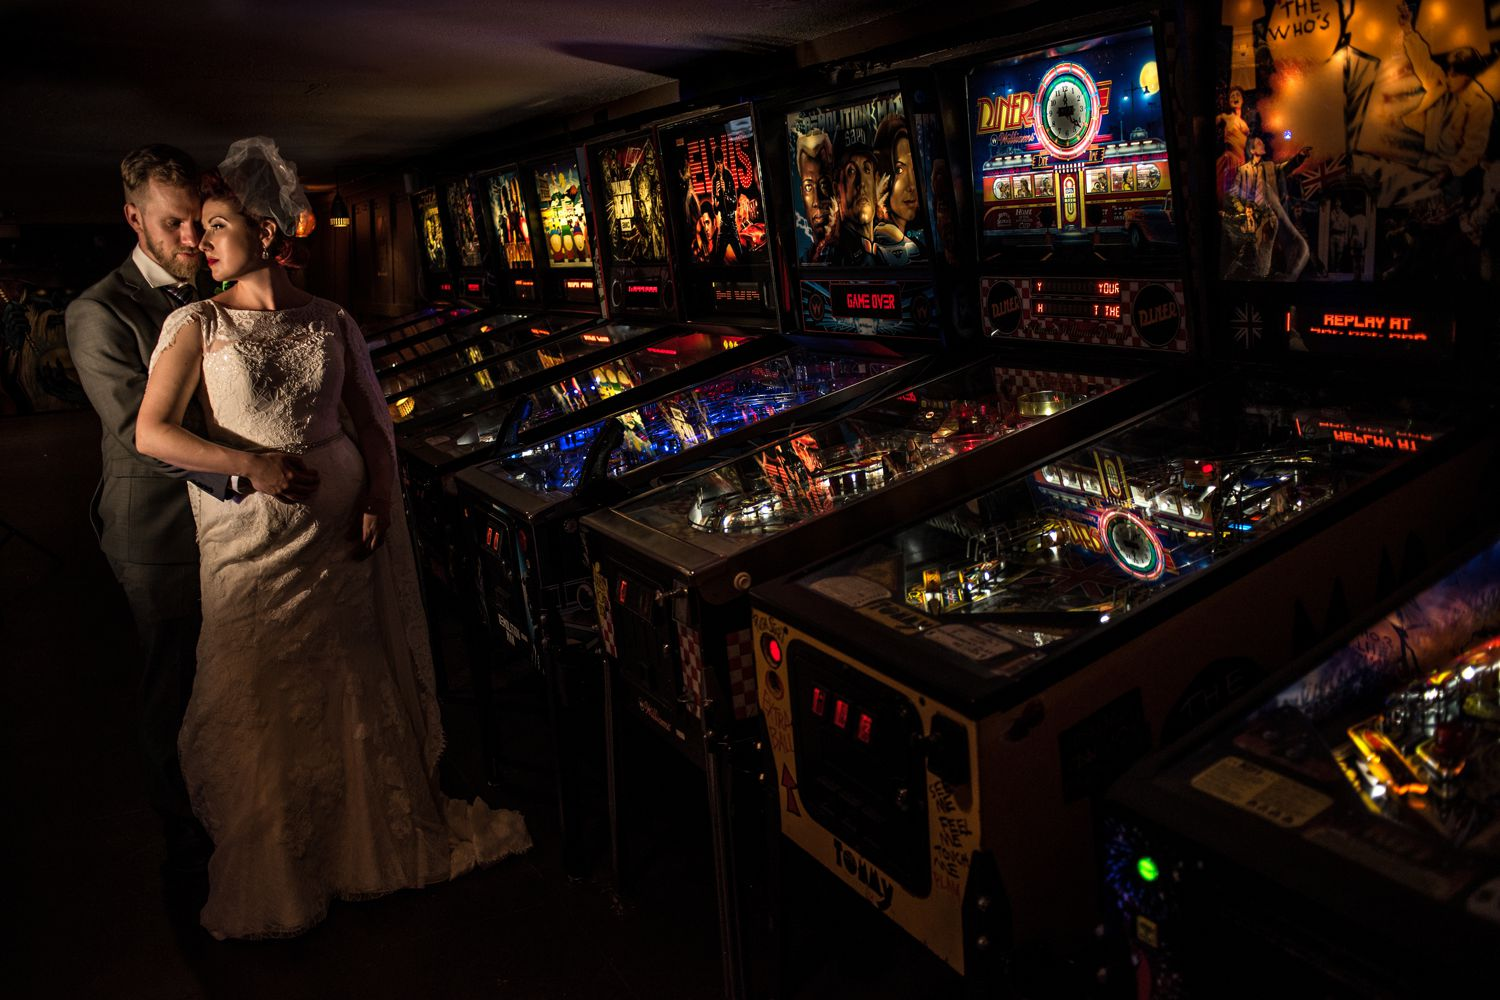 bride and groom portrait by pinball machines at the house of targ